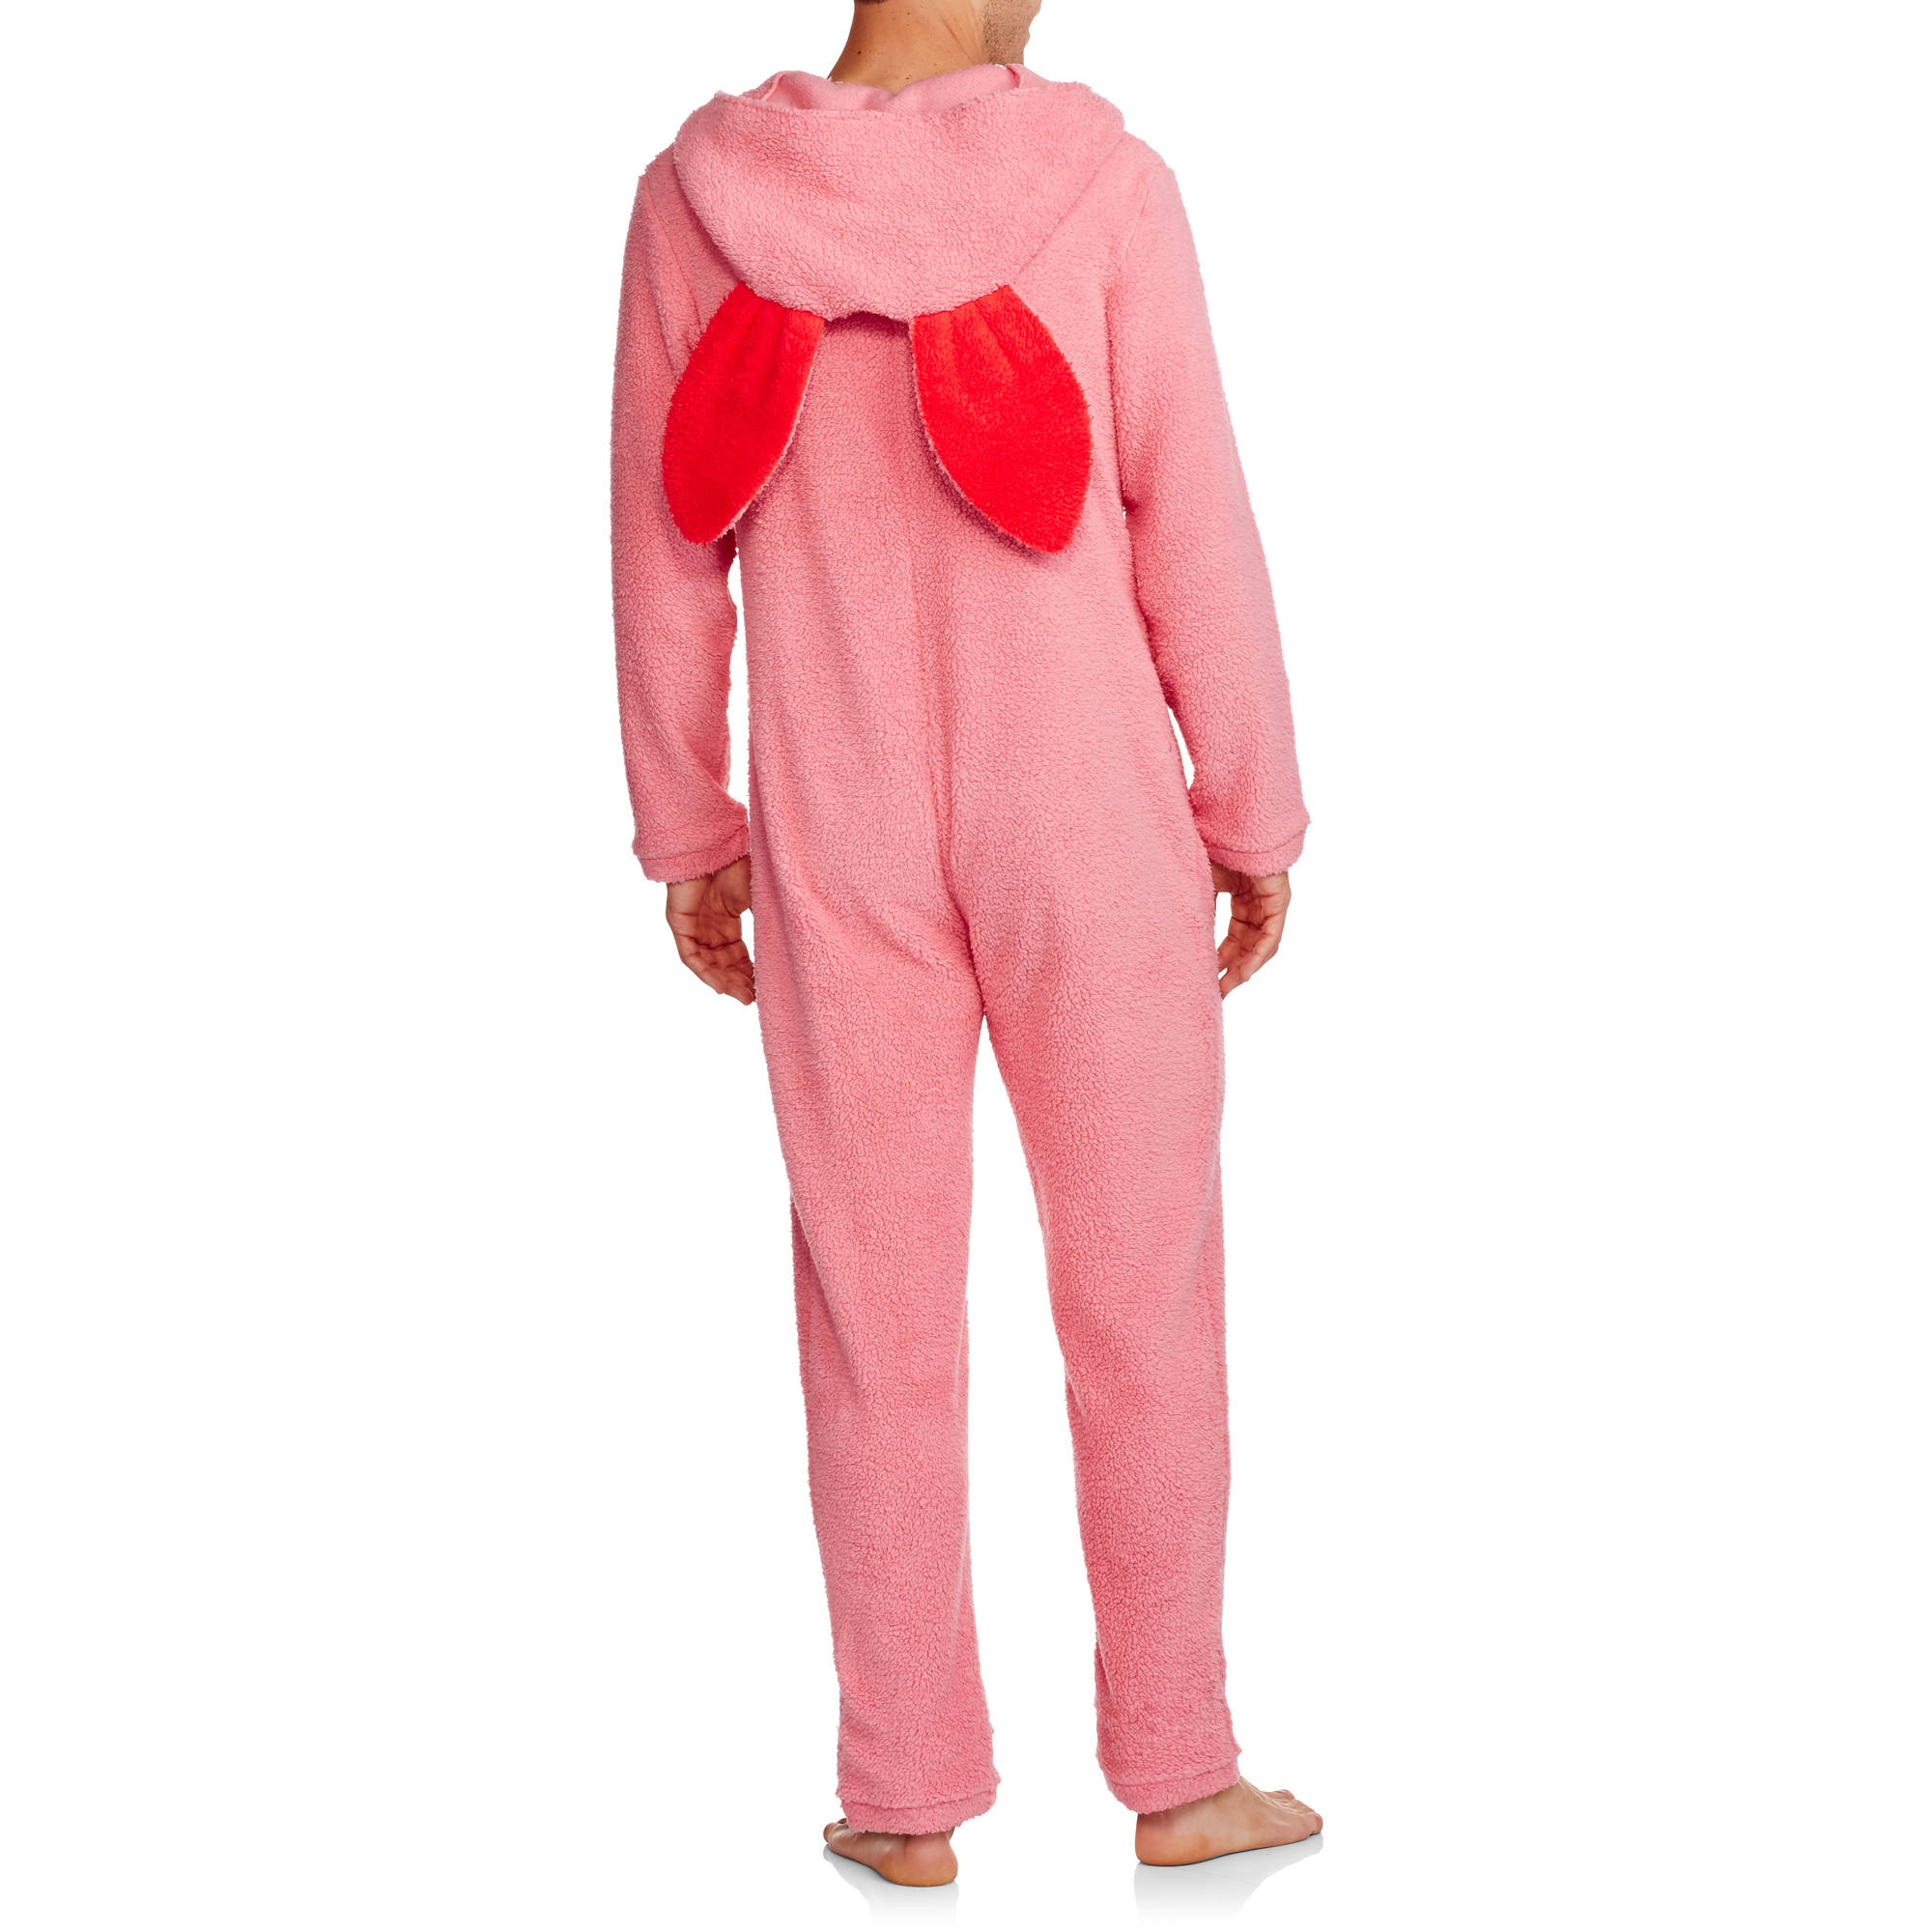 a christmas story mens pink bunny union suit pajama